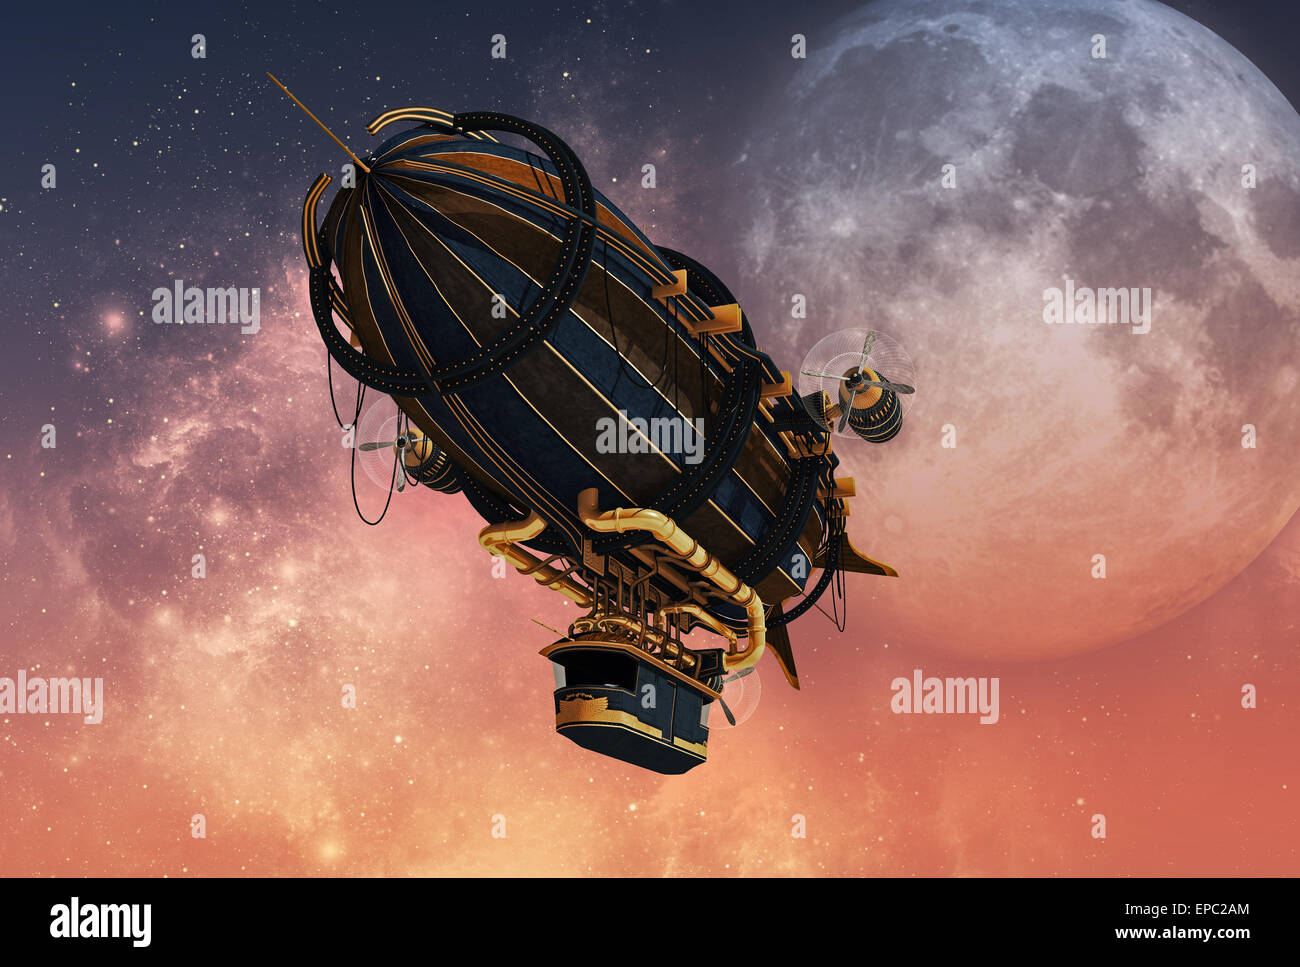 3d computer graphics of a Zeppelin in Steampunk style - Stock Image